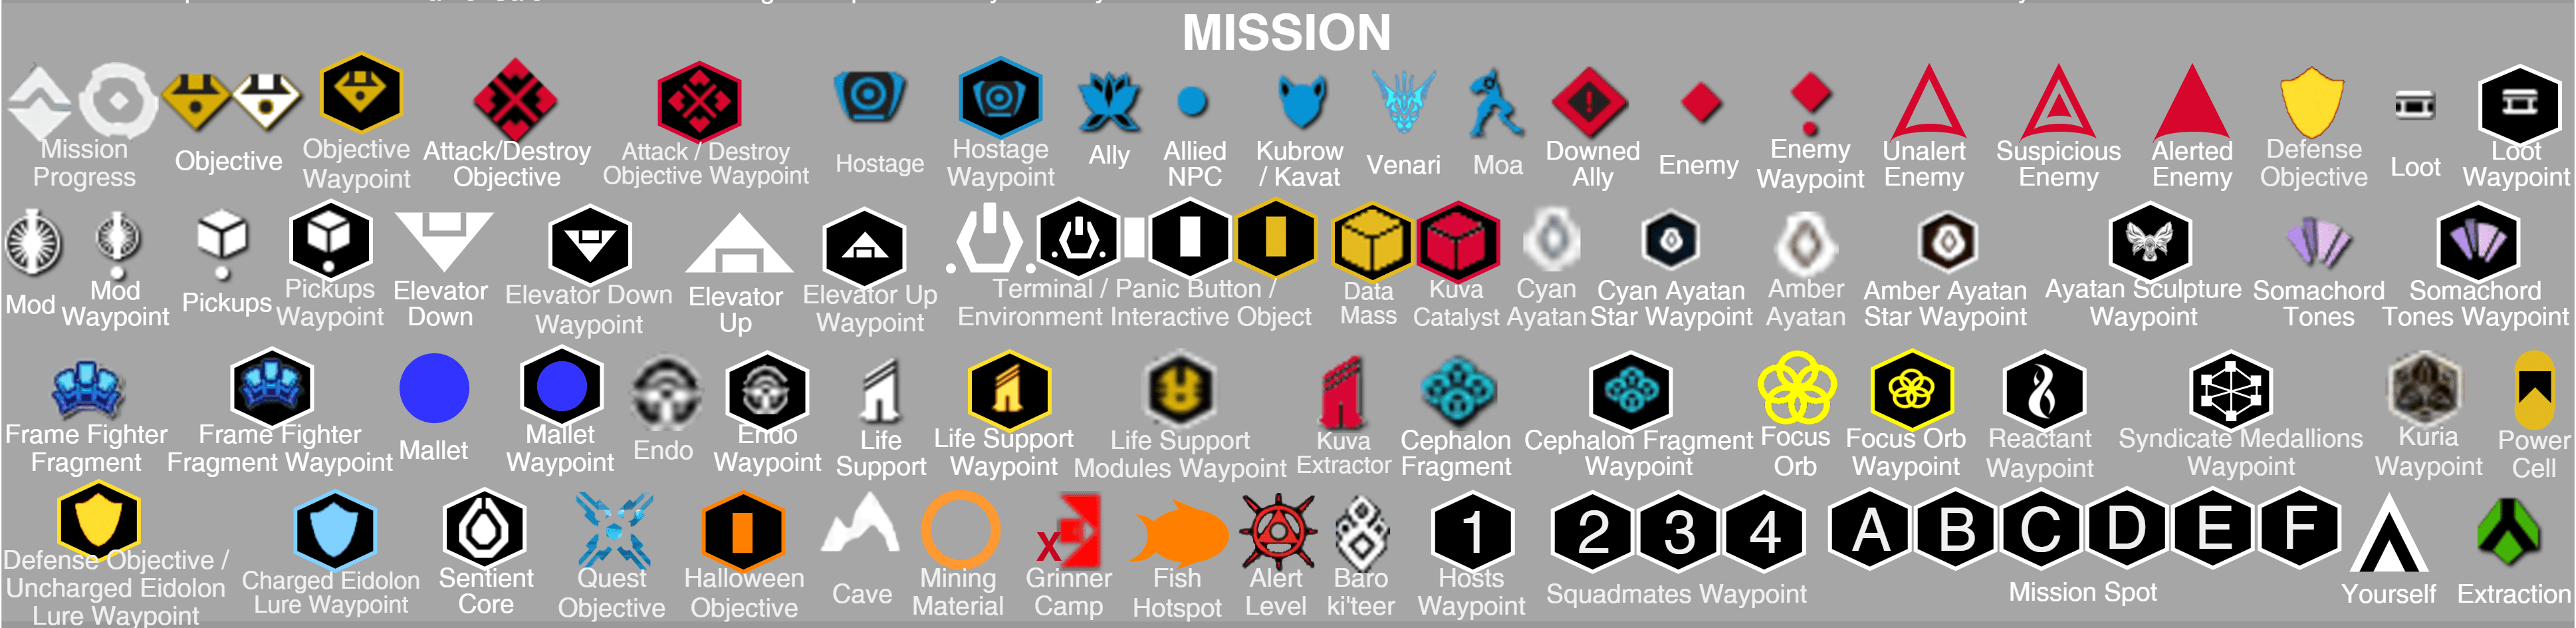 Warframe Mission and Mini Map Icons